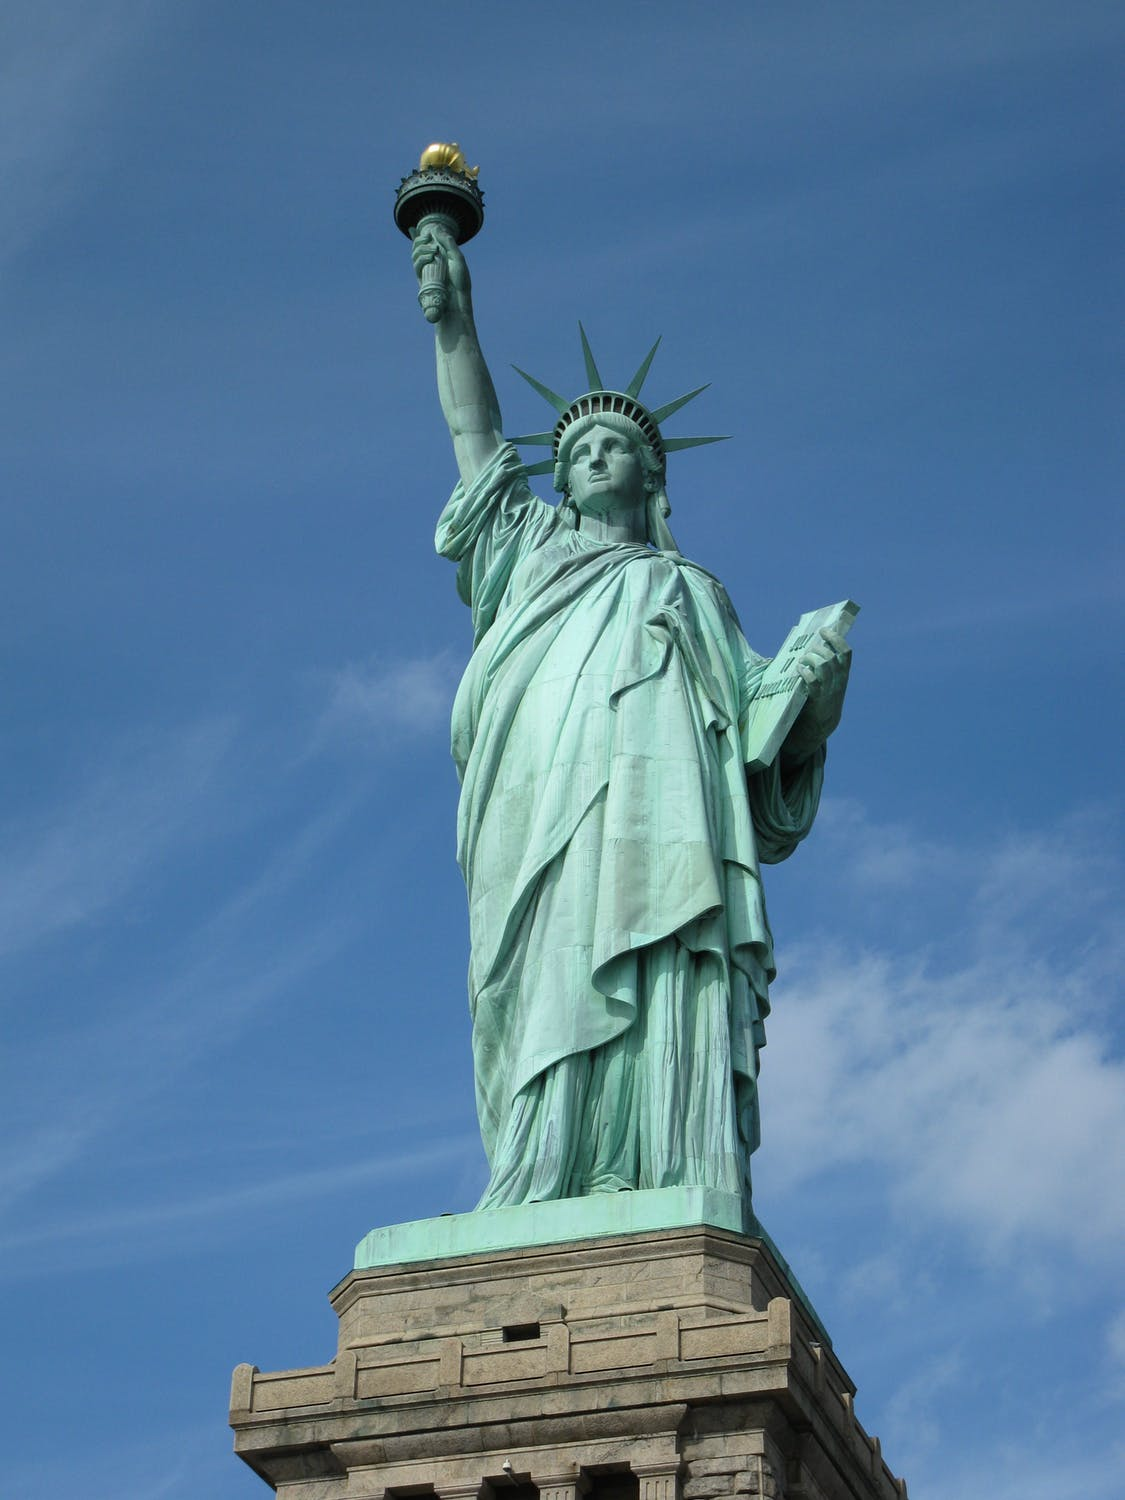 statue of liberty - we are the best when it comes to furniture moving in New York City